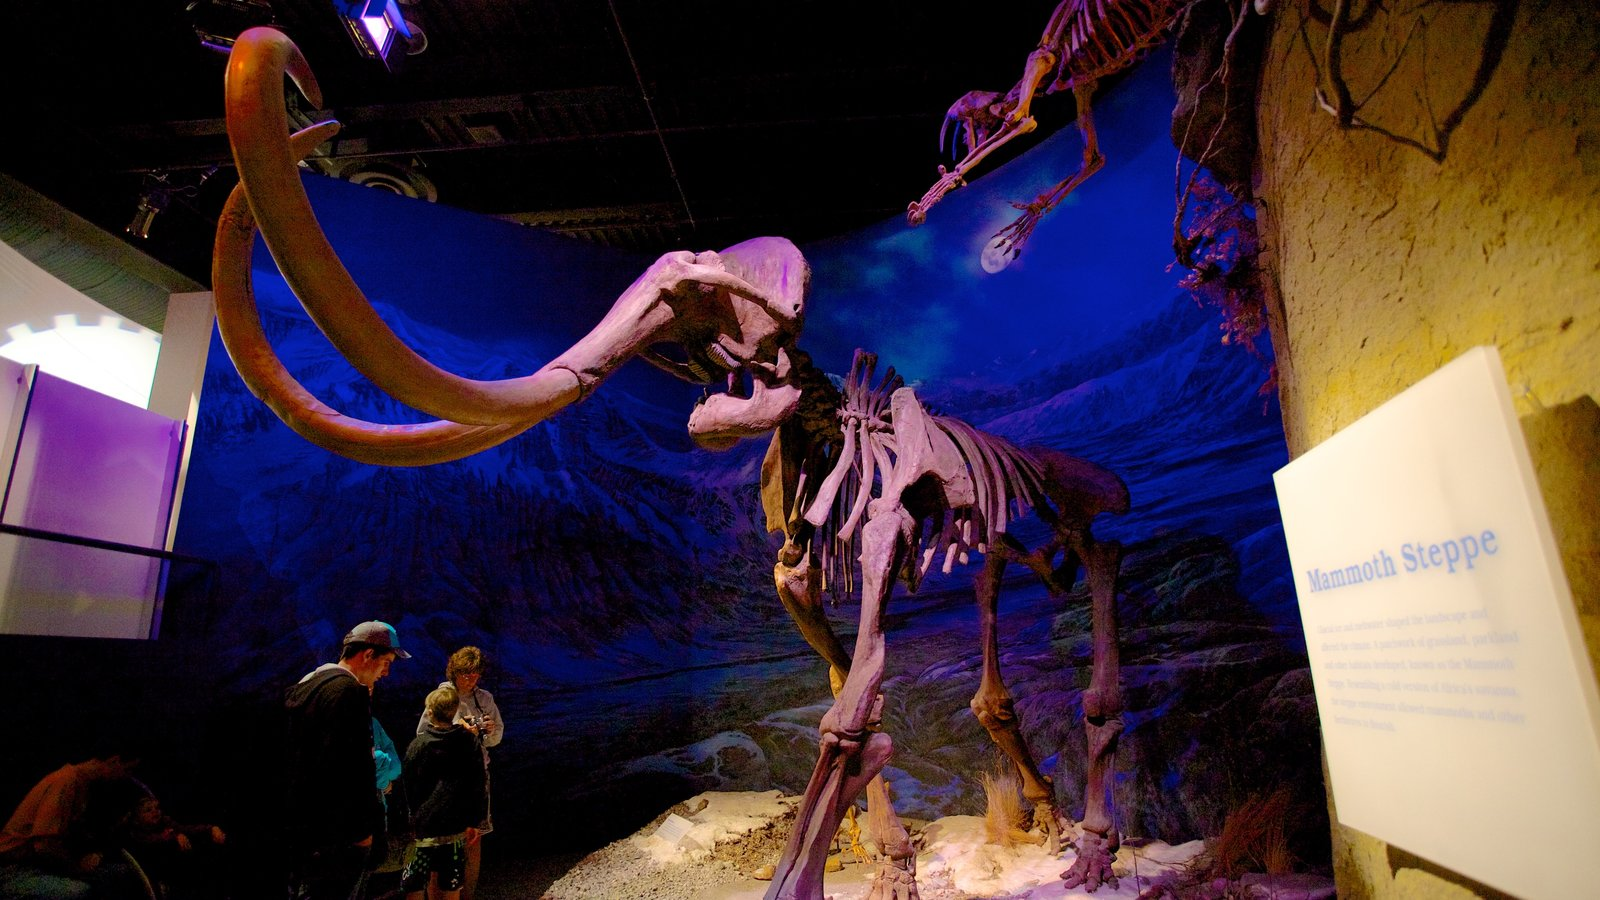 Royal Tyrrell Museum featuring interior views as well as a family